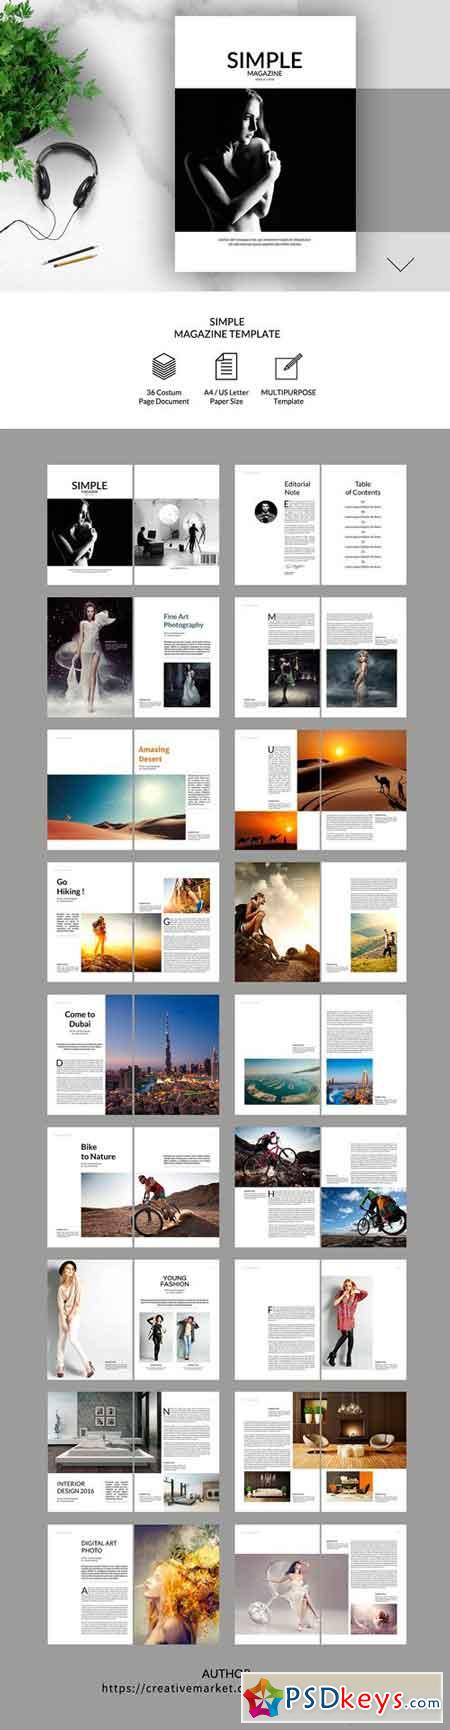 Simple Magazine Template 2268512